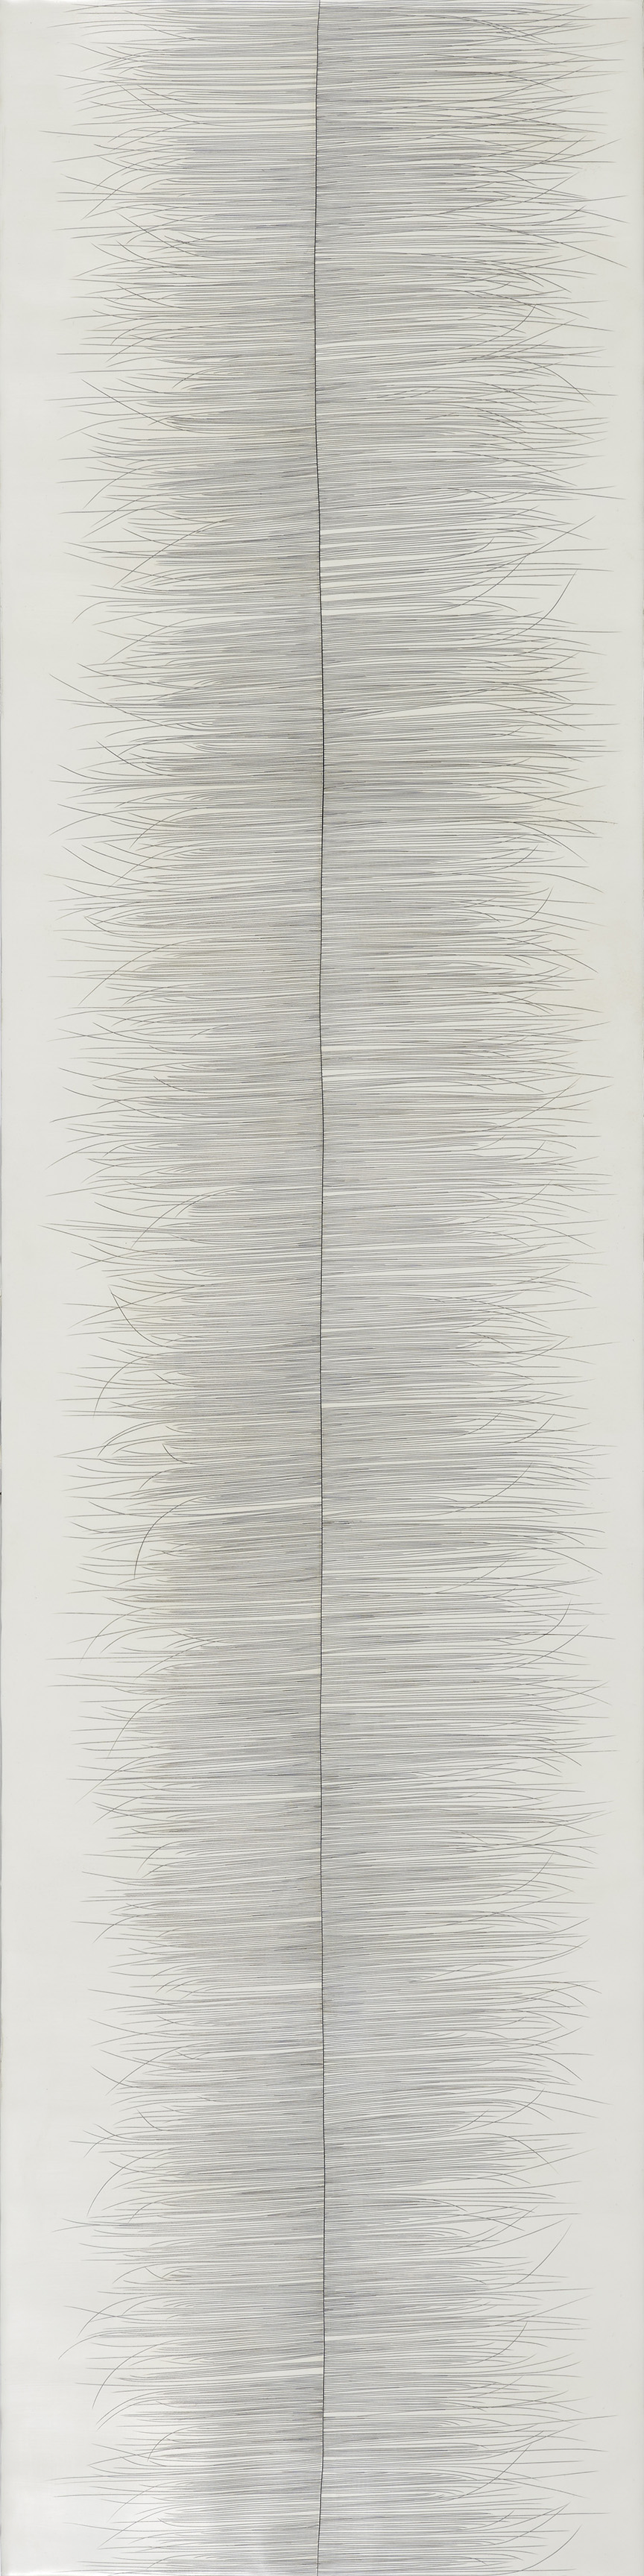 Threadline #10  , encaustic on cradled panel, 48x12, 2017